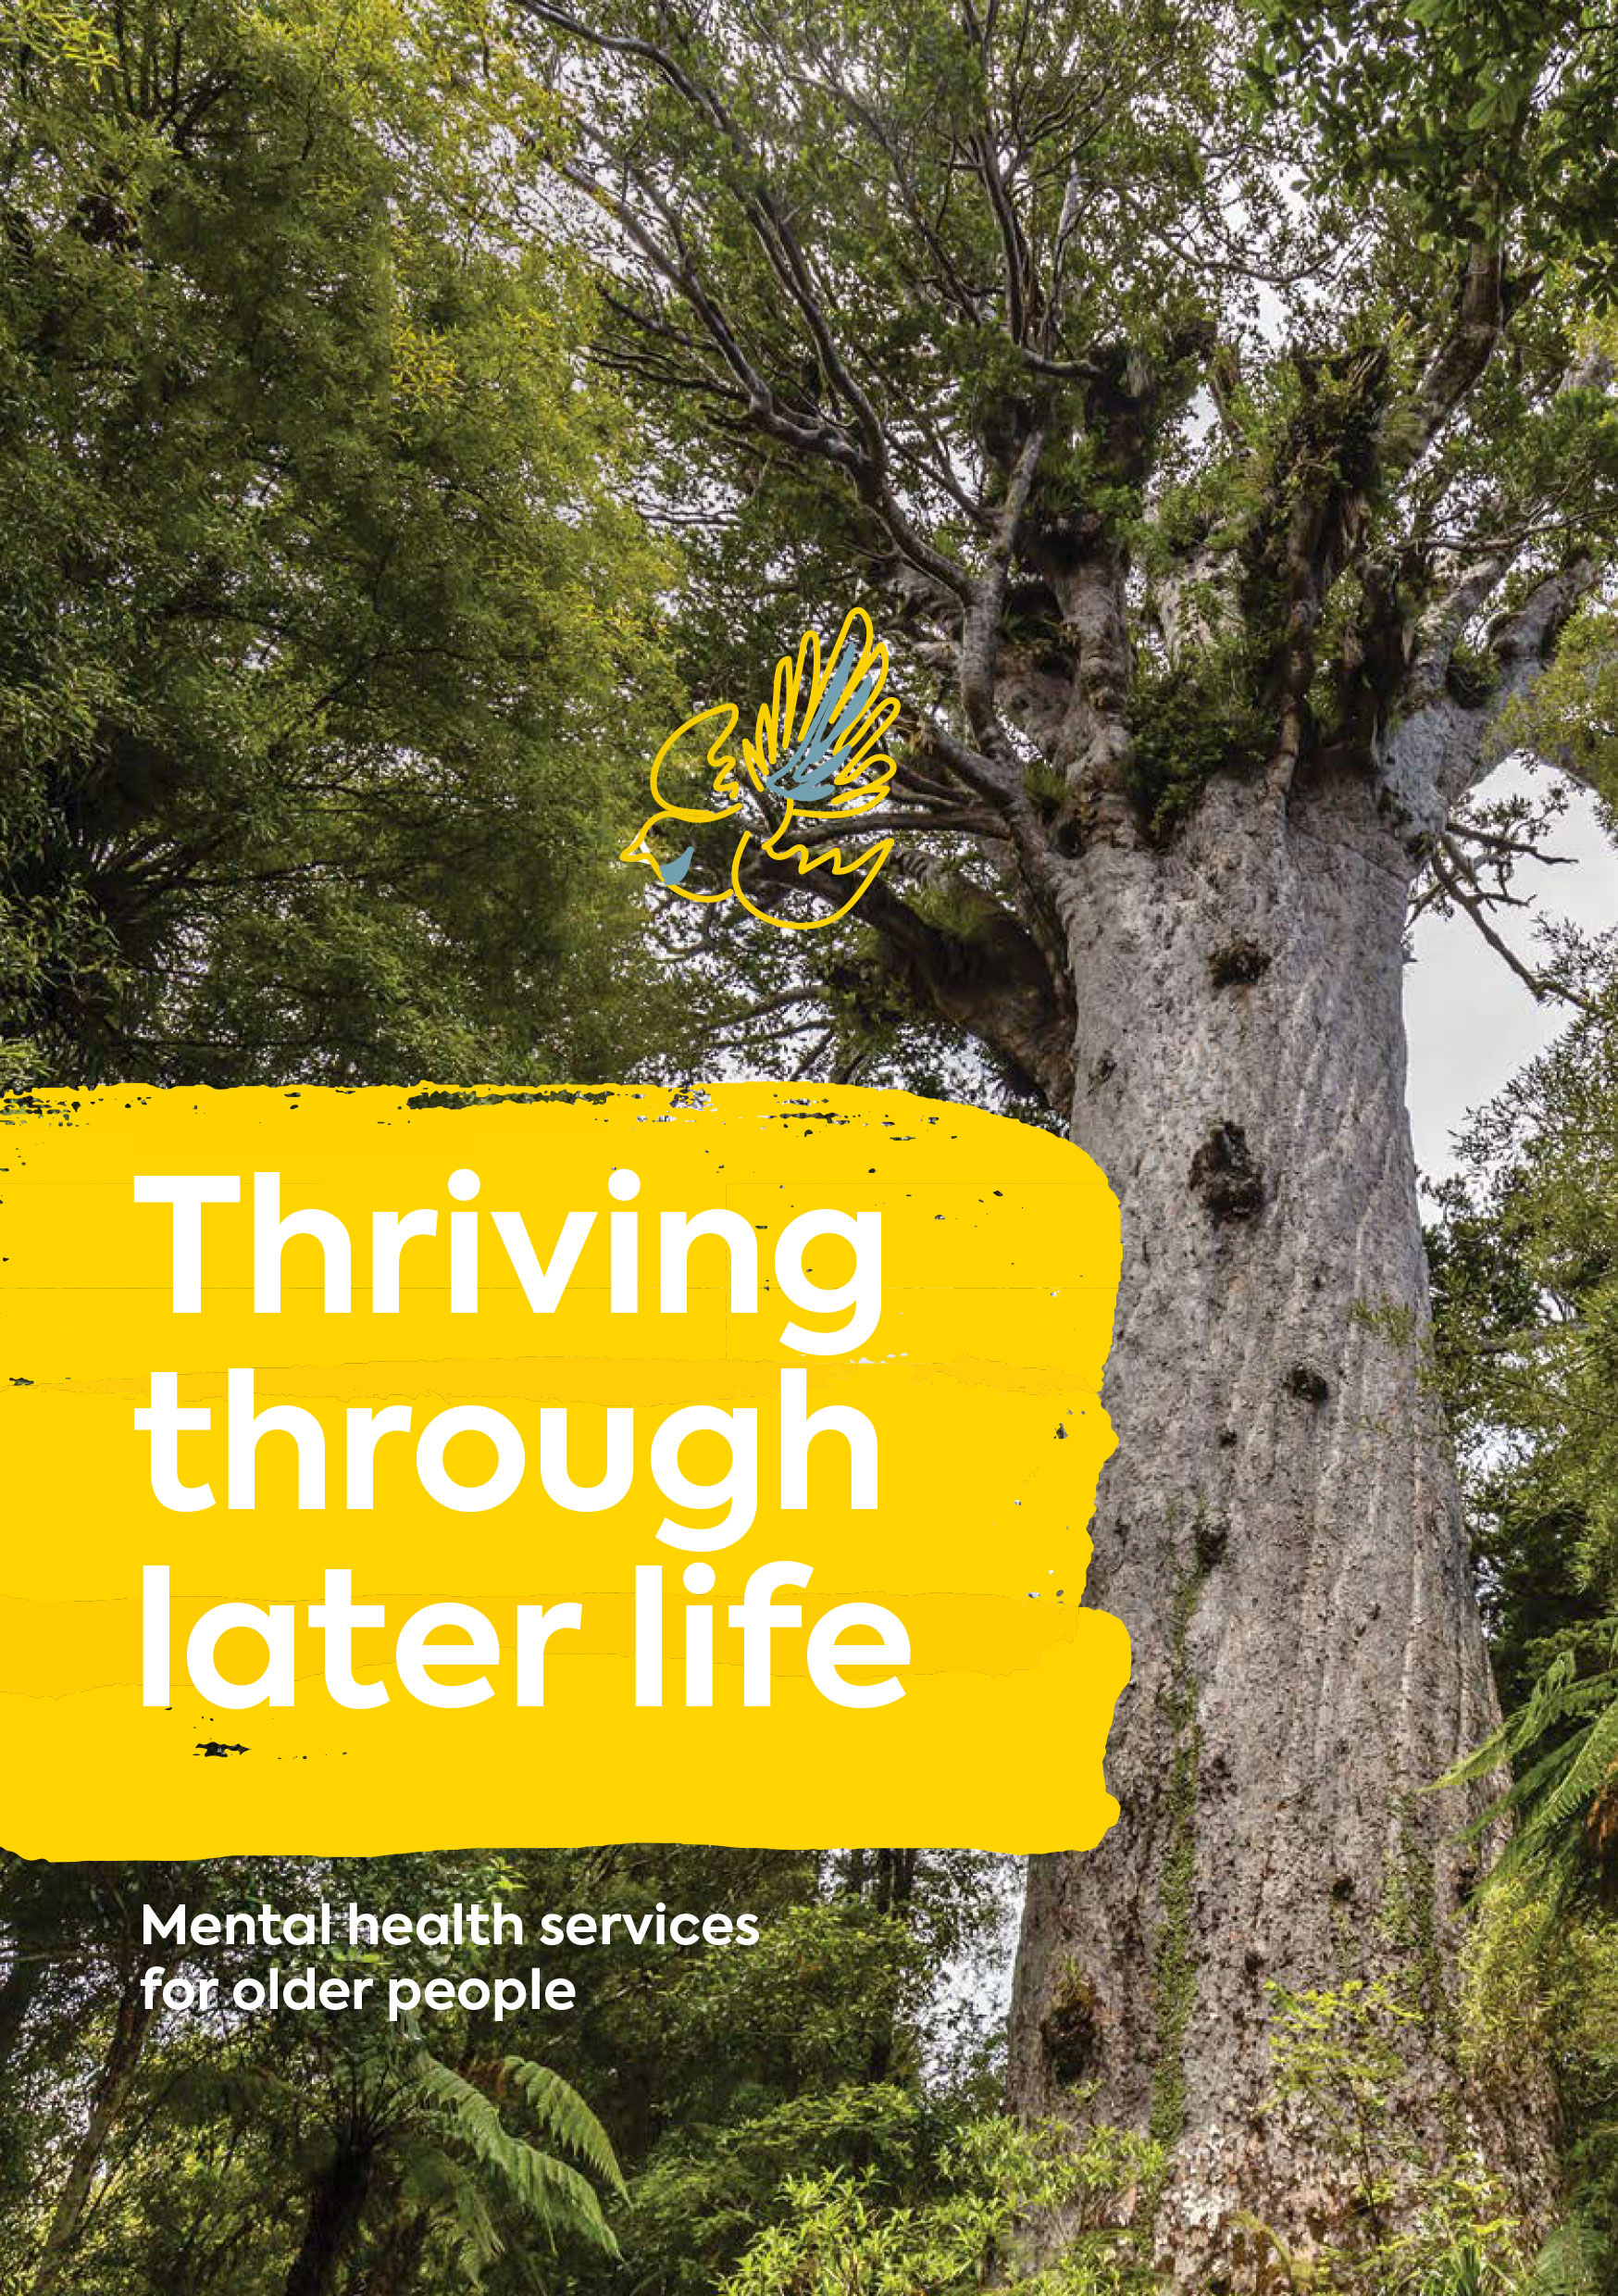 Thriving through later life: mental health services for older people